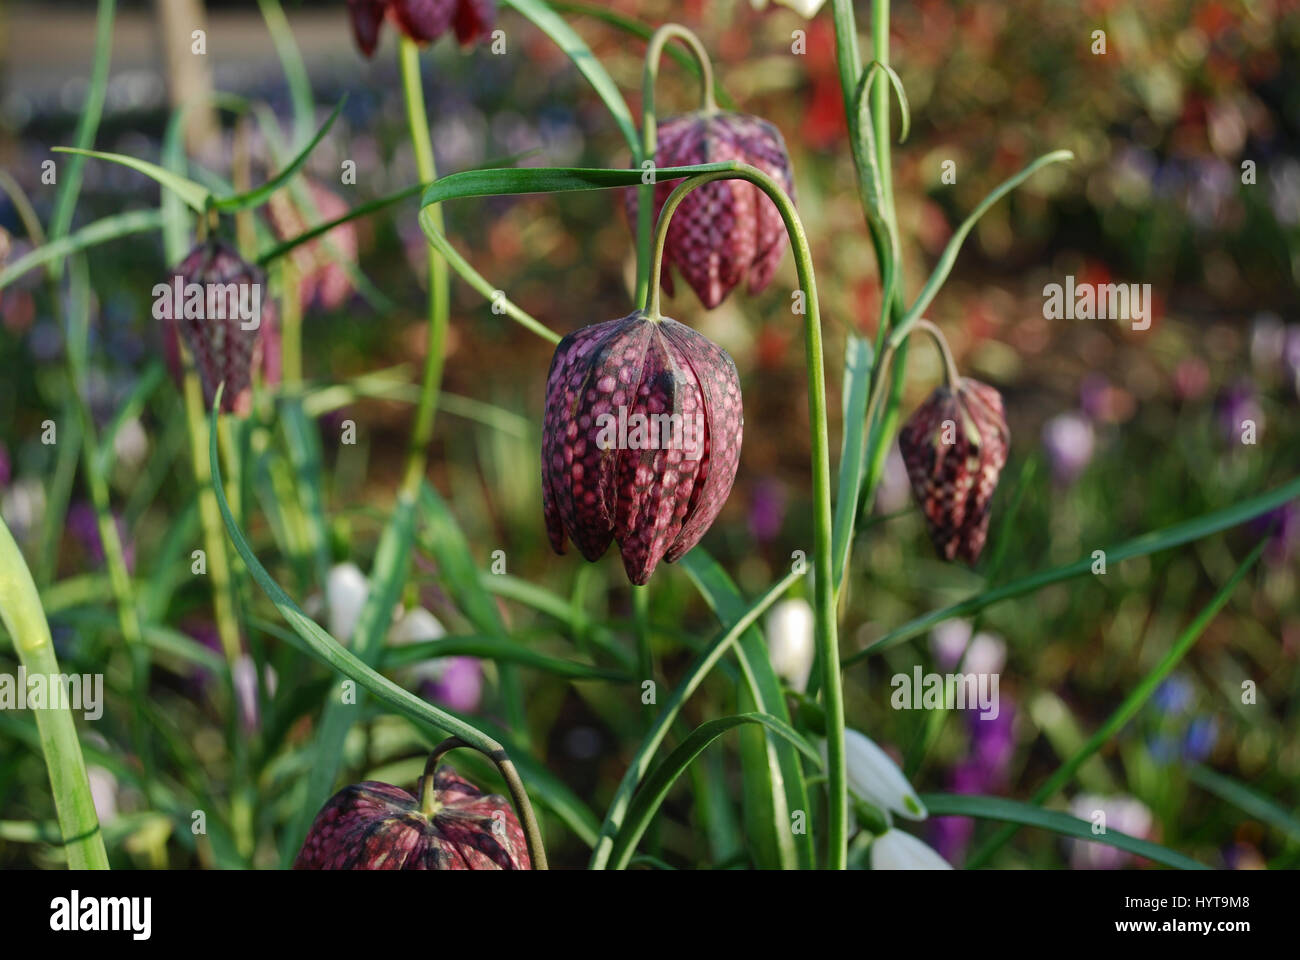 Snakes head Fritillaria meleagris chequered flowers are